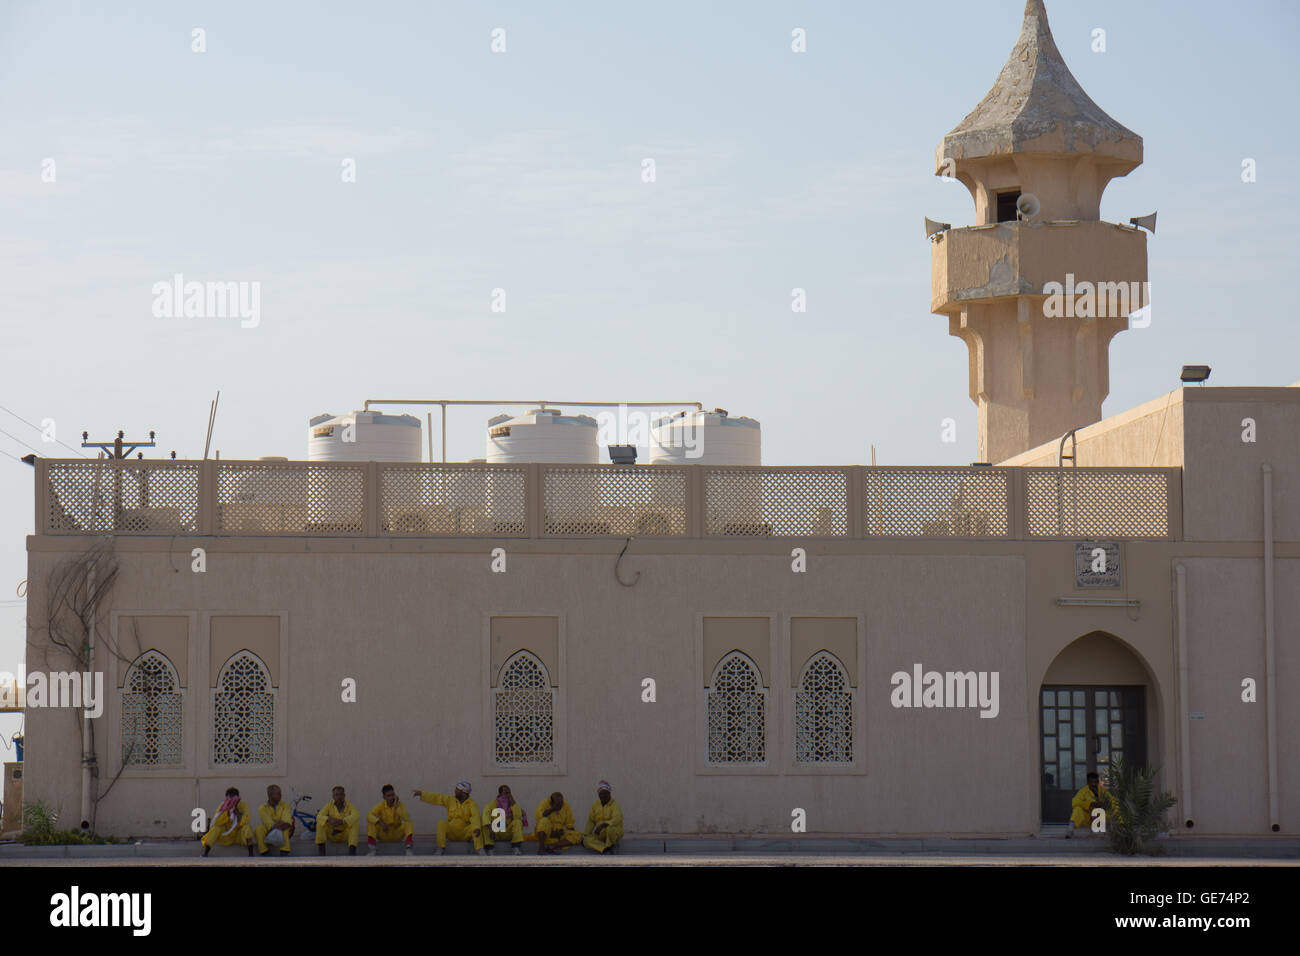 Migrant workers cleaning in Kuwait take a refuge in the shade of a Mosque from the hot weather - Stock Image